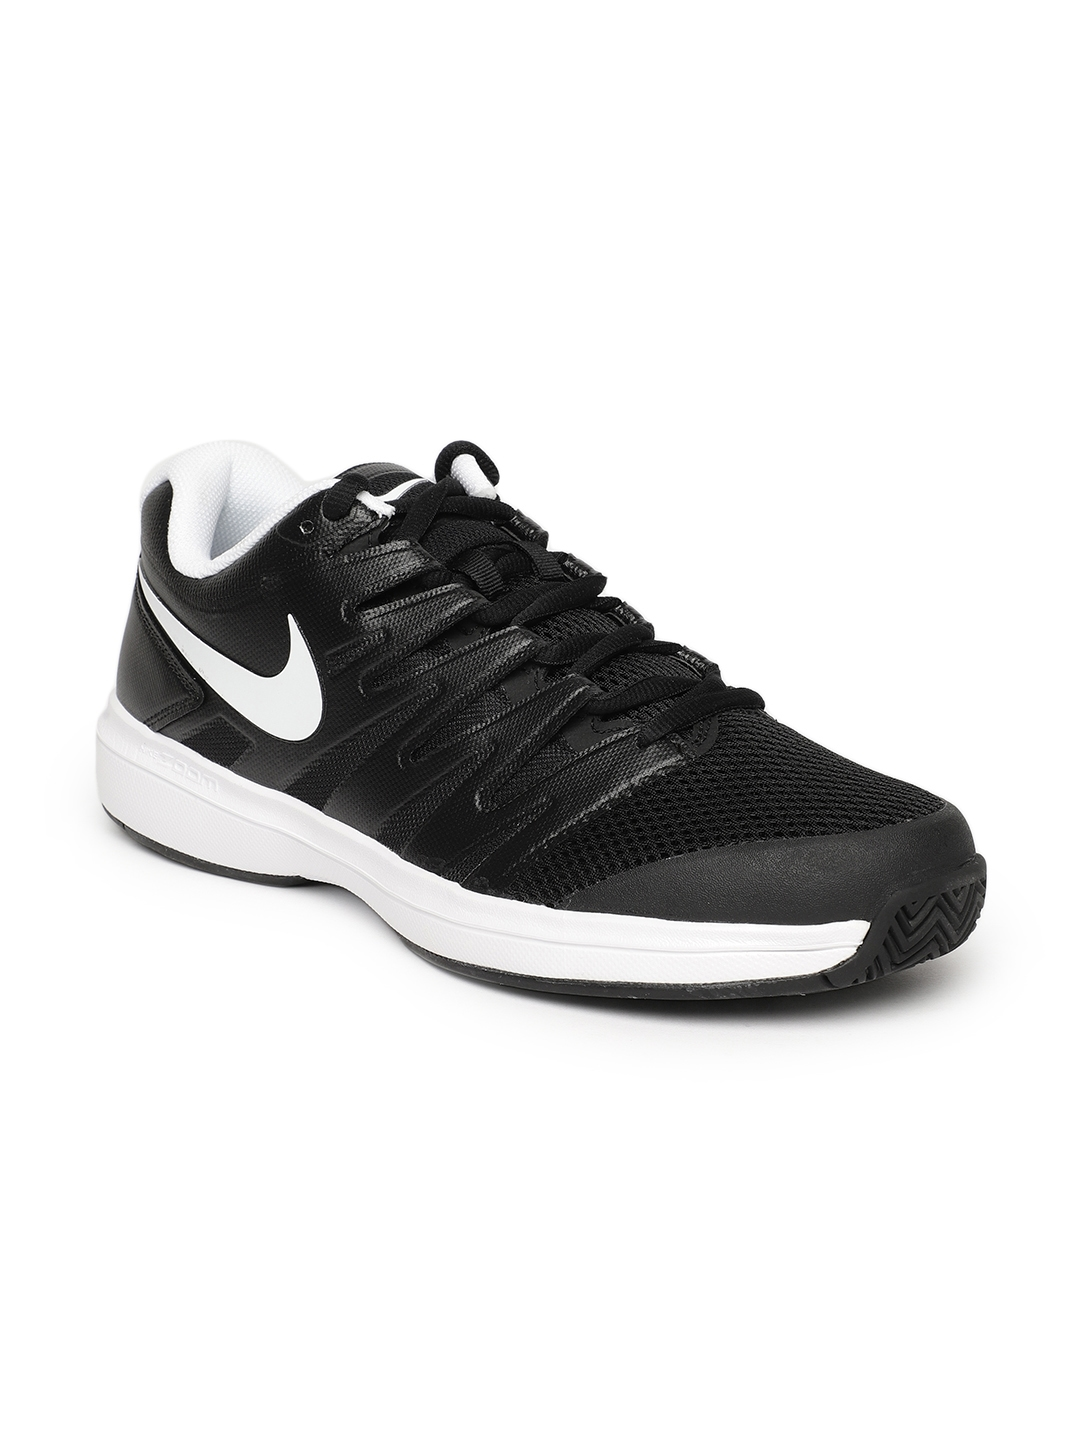 2b67808619c6 Buy Nike Men Black Solid AIR ZOOM PRESTIGE HC Tennis Shoes - Sports ...